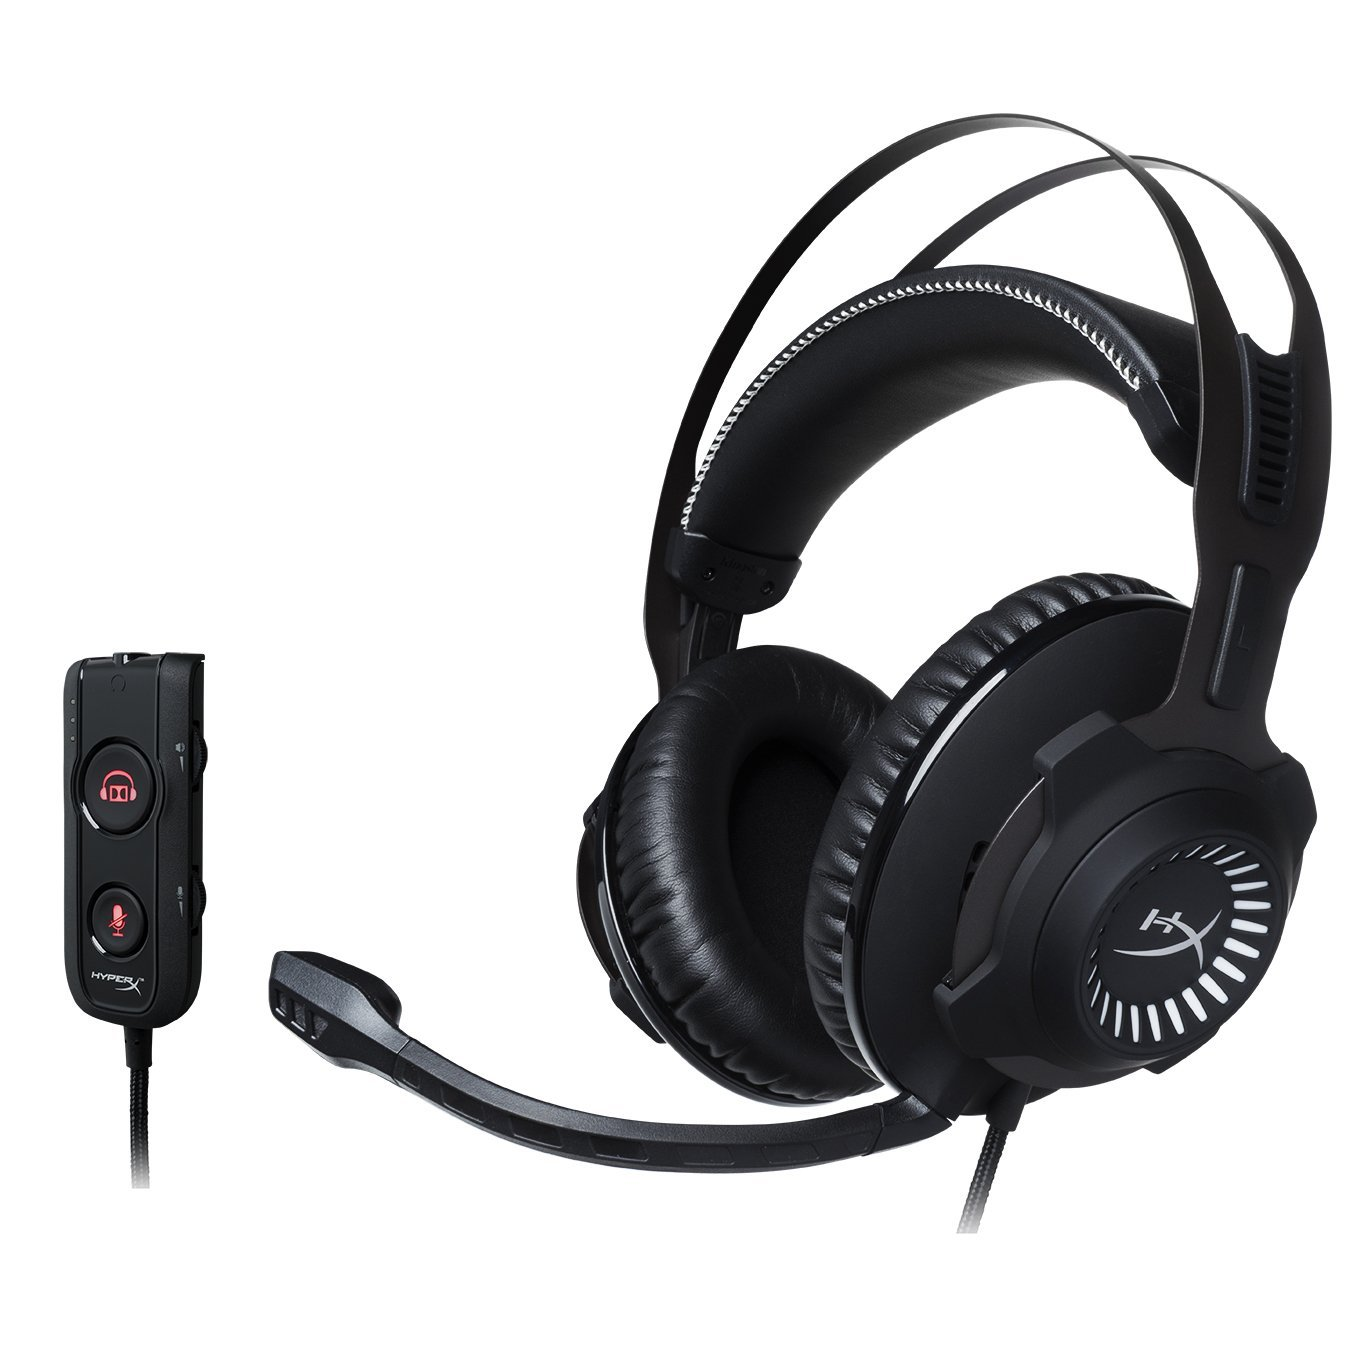 HyperX Cloud Revolver S Gaming Headset with Dolby 7.1 Surround Sound - Steel Frame - Signature Memory Foam, Premium Leatherette, for PC, PS4, PS4 PRO, Xbox One, Xbox One S (HX-HSCRS-GM/NA) (Renewed) by HyperX